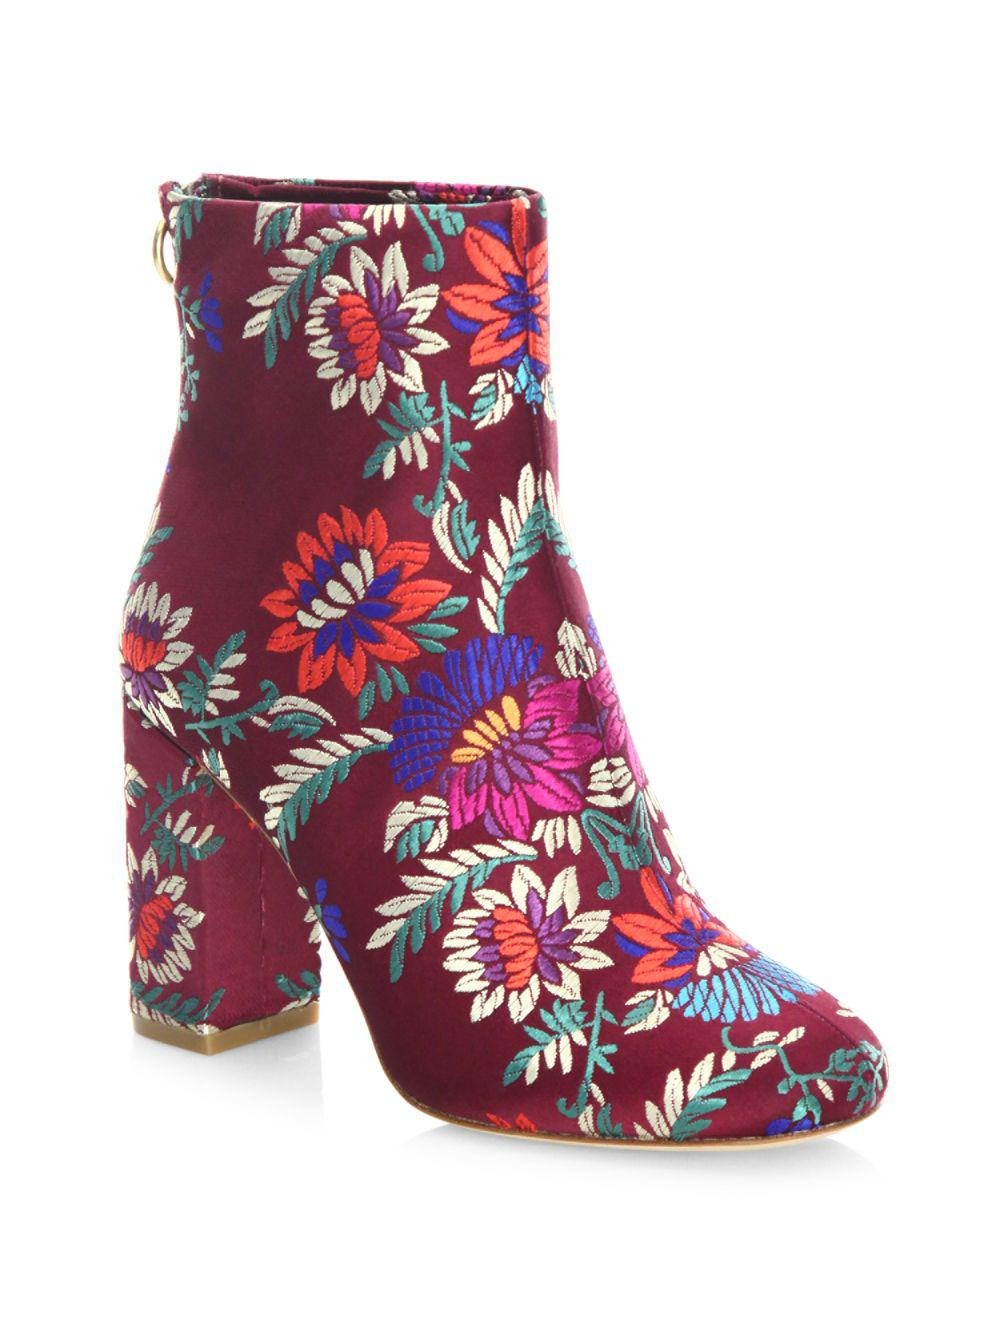 52322ea6b207 Lyst - Joie Saleema Brocade Leather Ankle Boots in Red - Save 7%